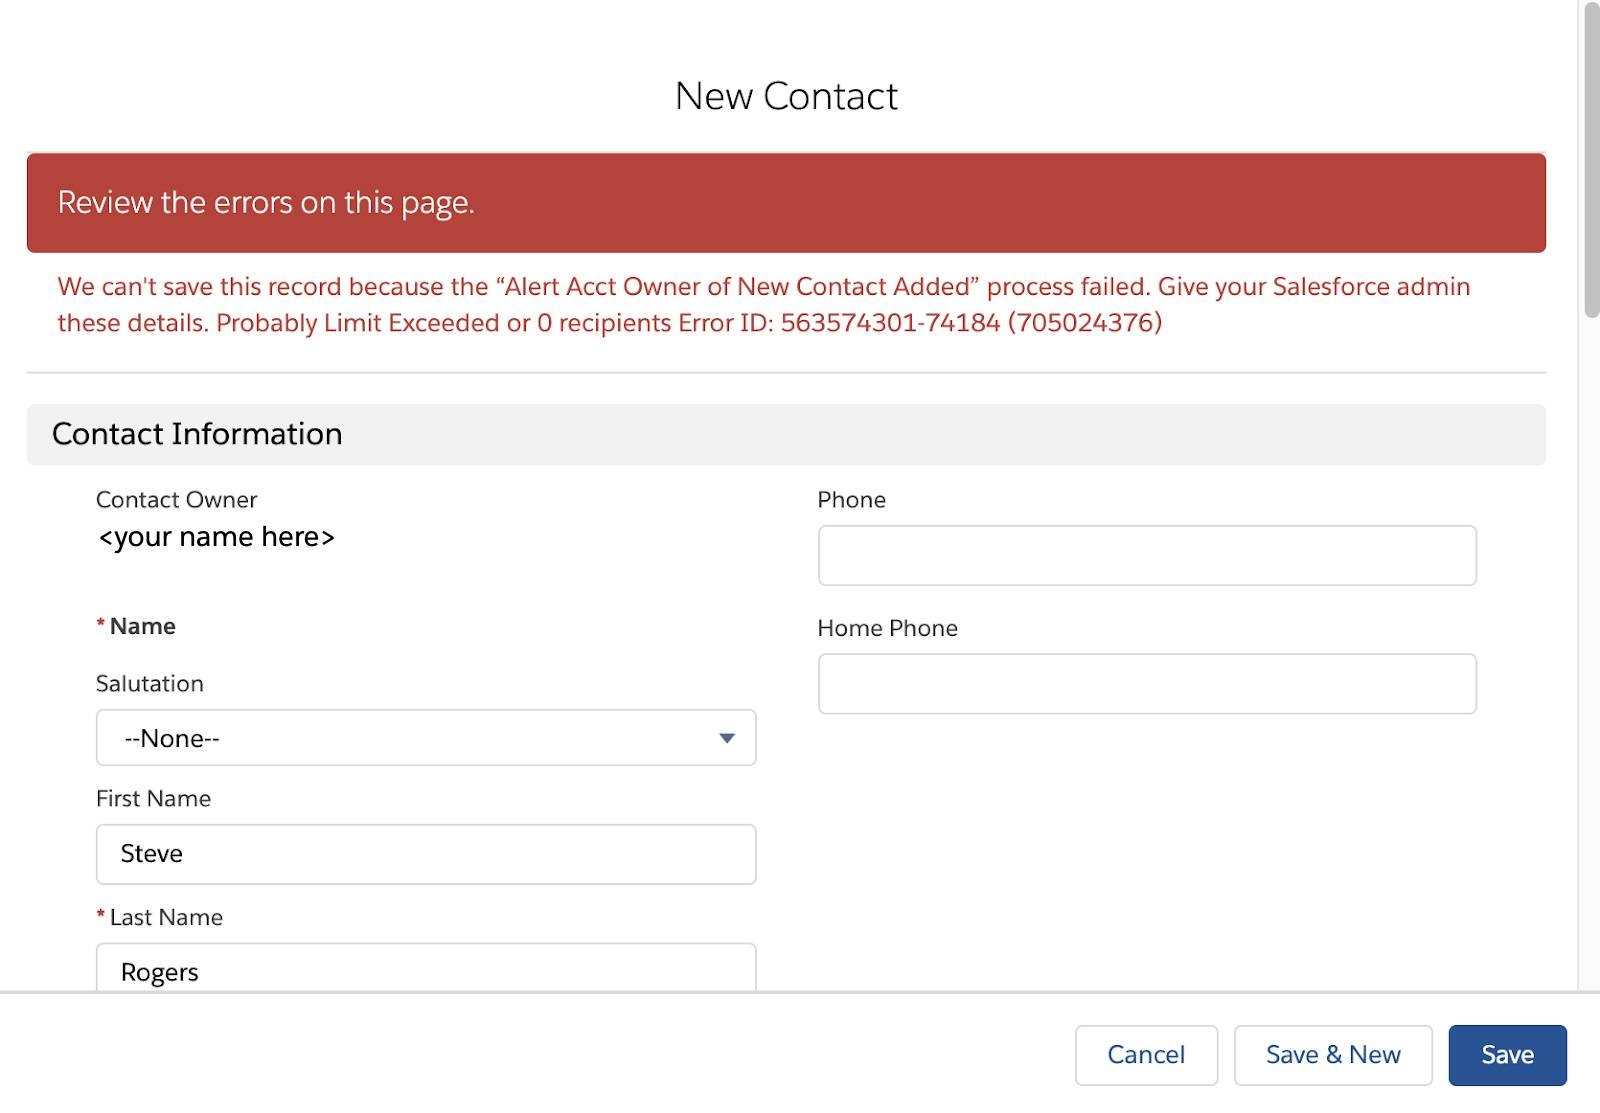 """New Contact error message: We can't save this record because the """"Alert Acct Owner of New Contact Added"""" process failed. Give your Salesforce admin these details. Probably Limit Exceeded or 0 recipients"""